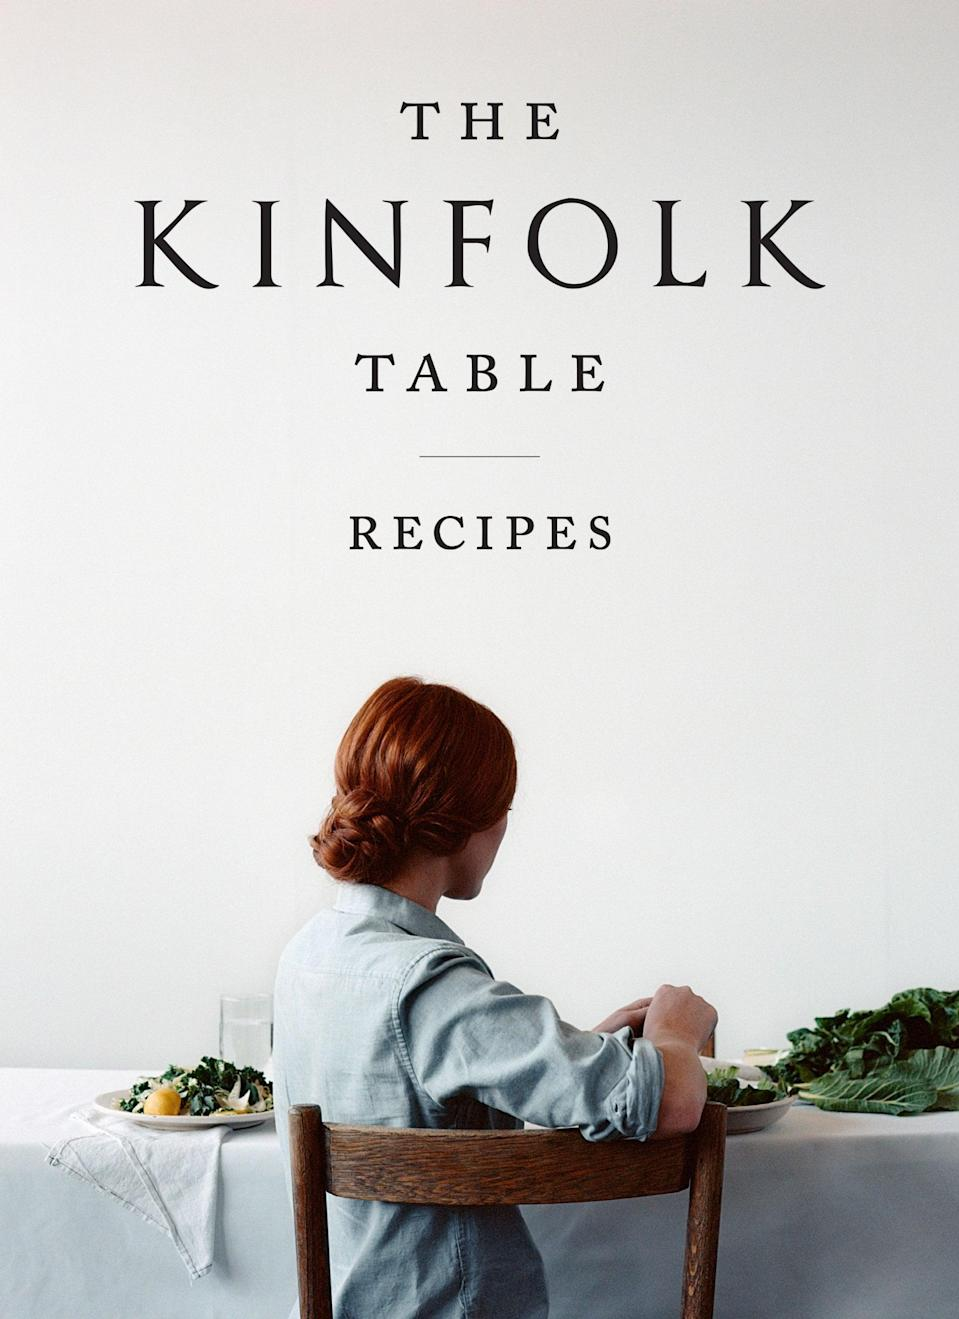 <p>Gather around <span><strong>The Kinfolk Table</strong></span> ($28). Profiling 45 tastemakers - ranging from home cooks, bloggers, chefs, writers, and bakers - this cookbook is an ode to simple living and bringing people together through a common love for eating.</p>